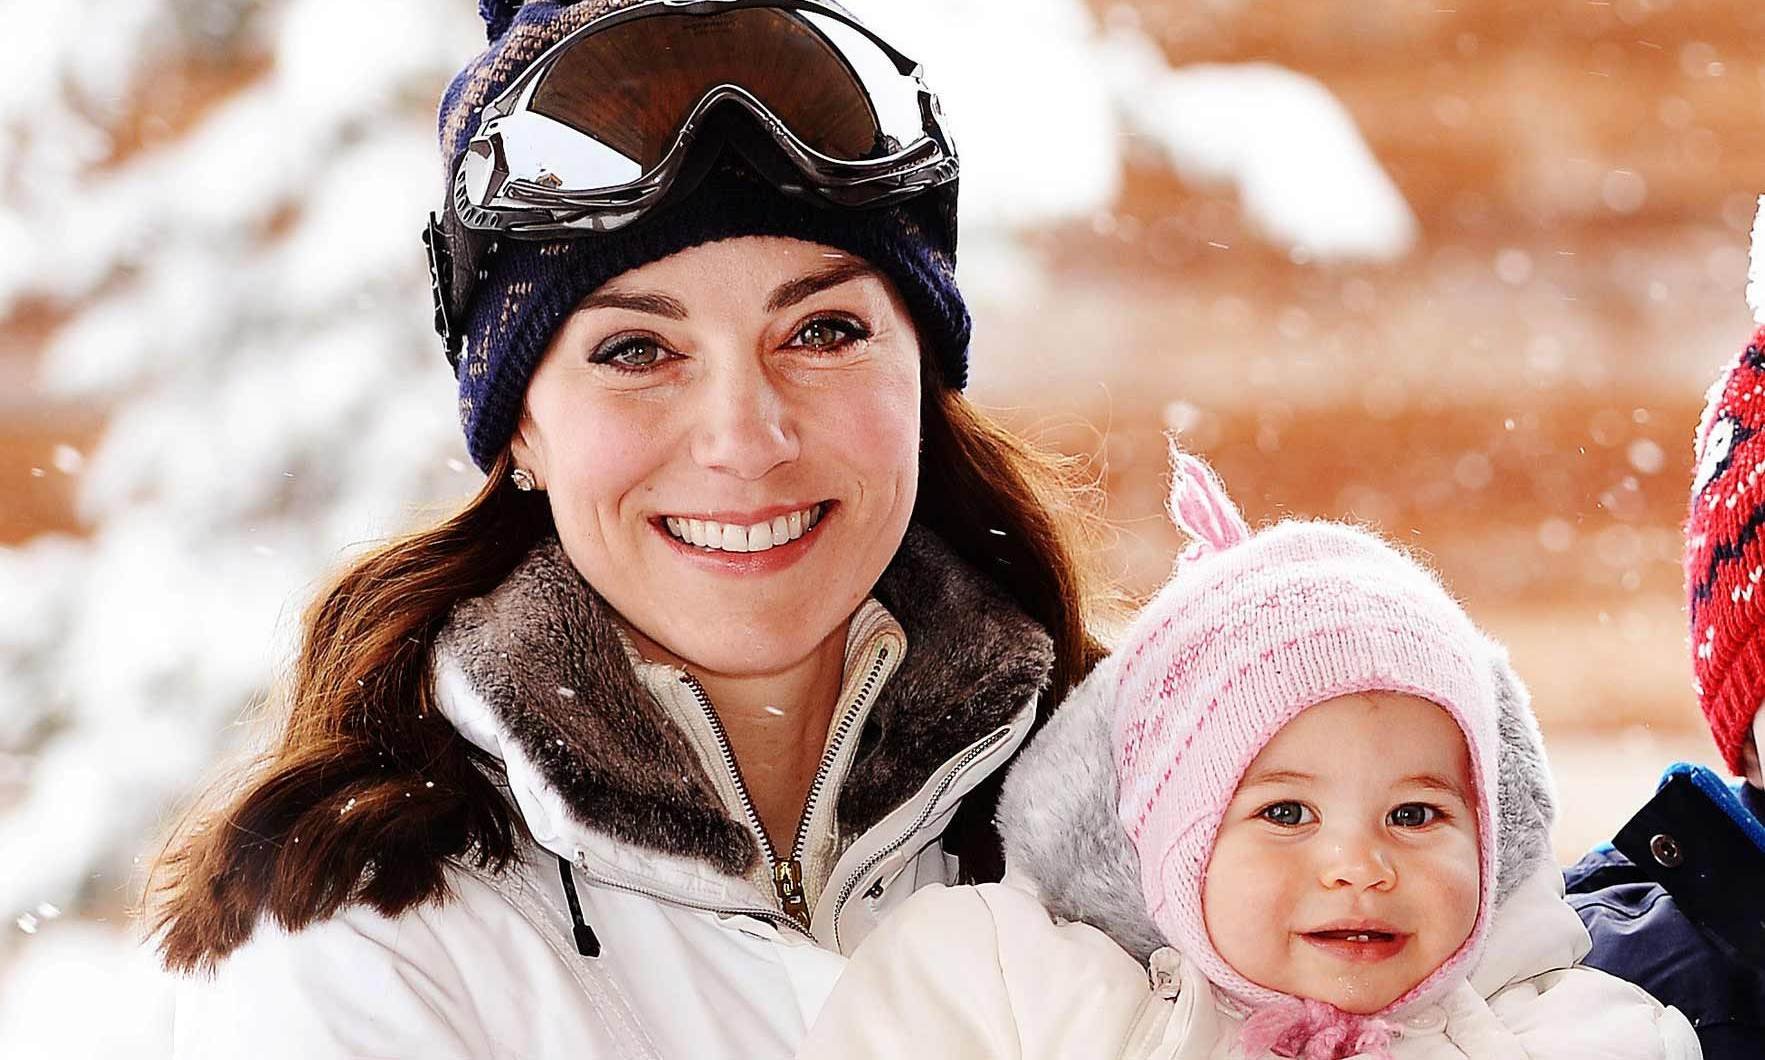 Kate Middleton39s Ski Resort Wear Get The Head To Toe Look